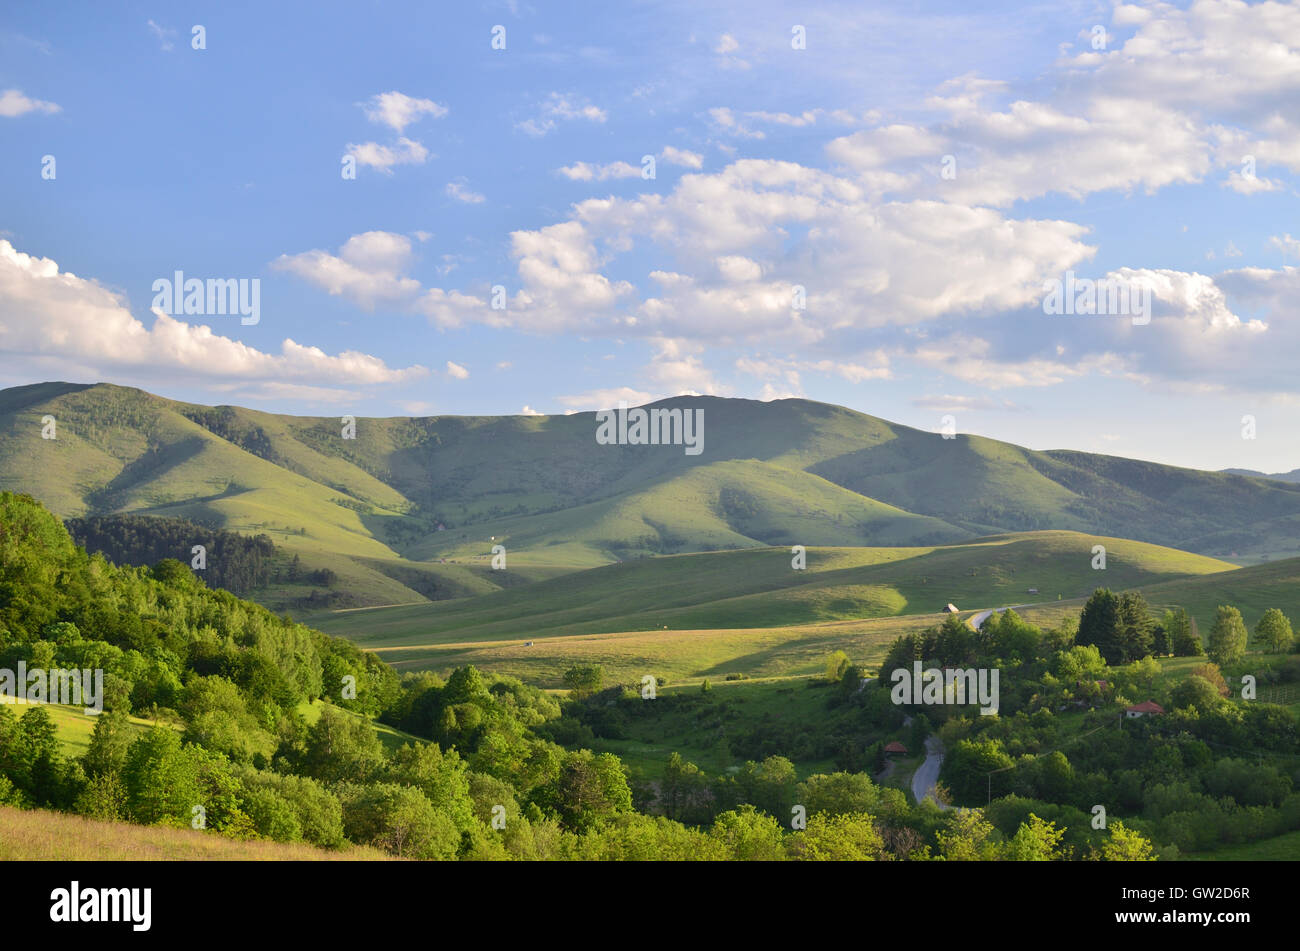 Landscape of Zlatibor Mountain. Green meadows and hills under blue sky with some clouds in springtime - Stock Image